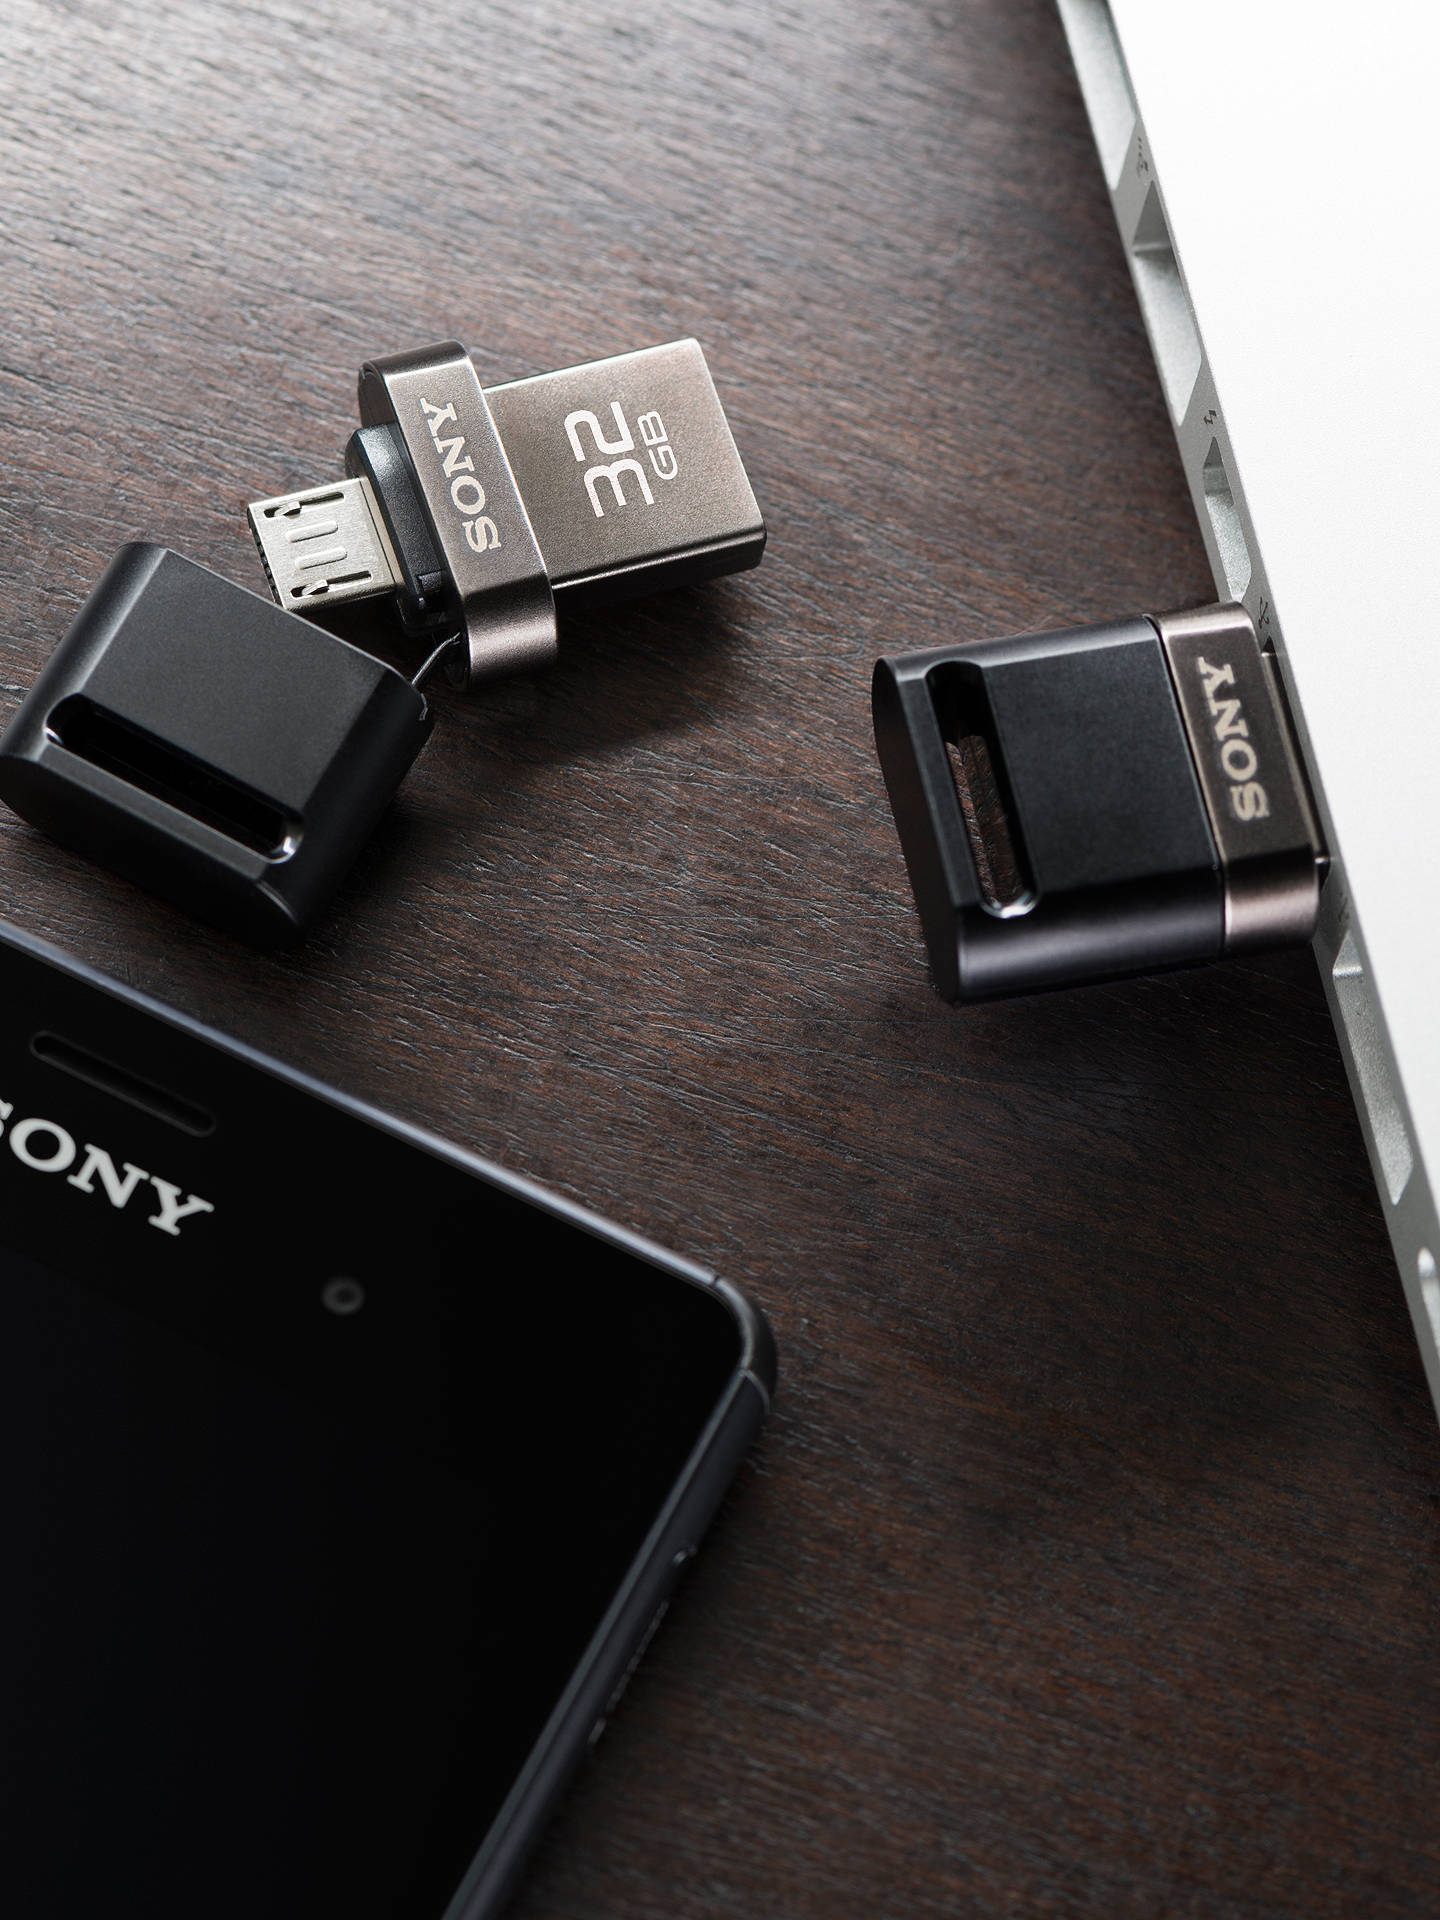 Buy Sony Portable USB Flash Storage Drive, Black, 32GB Online at johnlewis.com